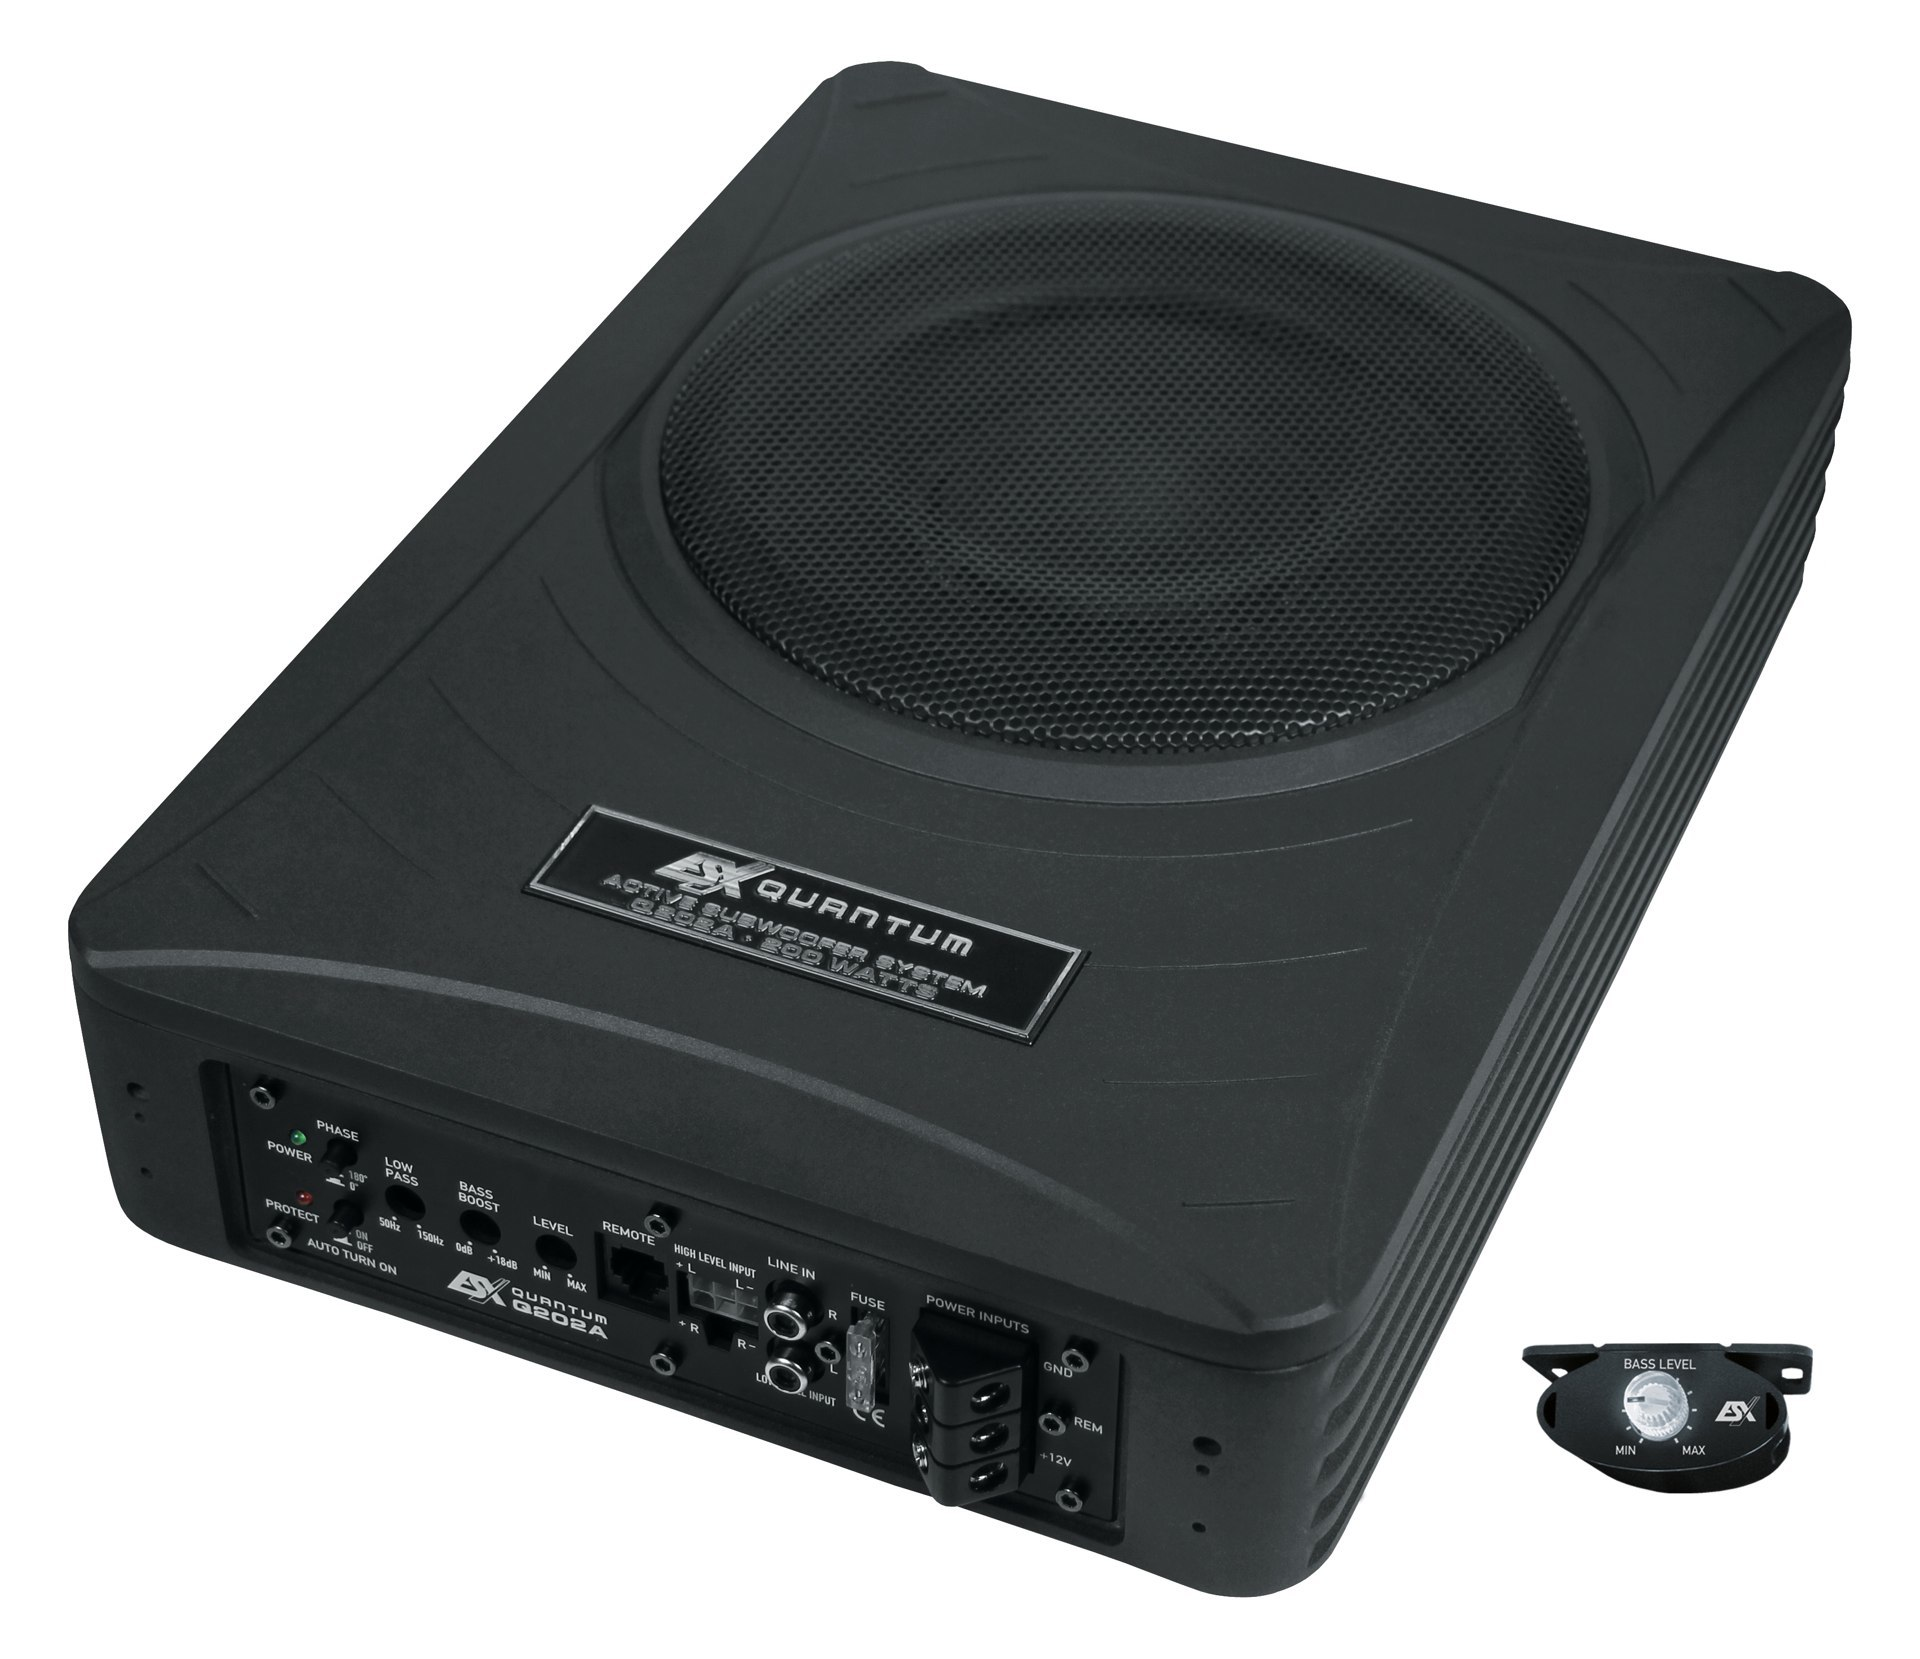 aktiv auto subwoofer esx quantum q bass q202a 200w. Black Bedroom Furniture Sets. Home Design Ideas